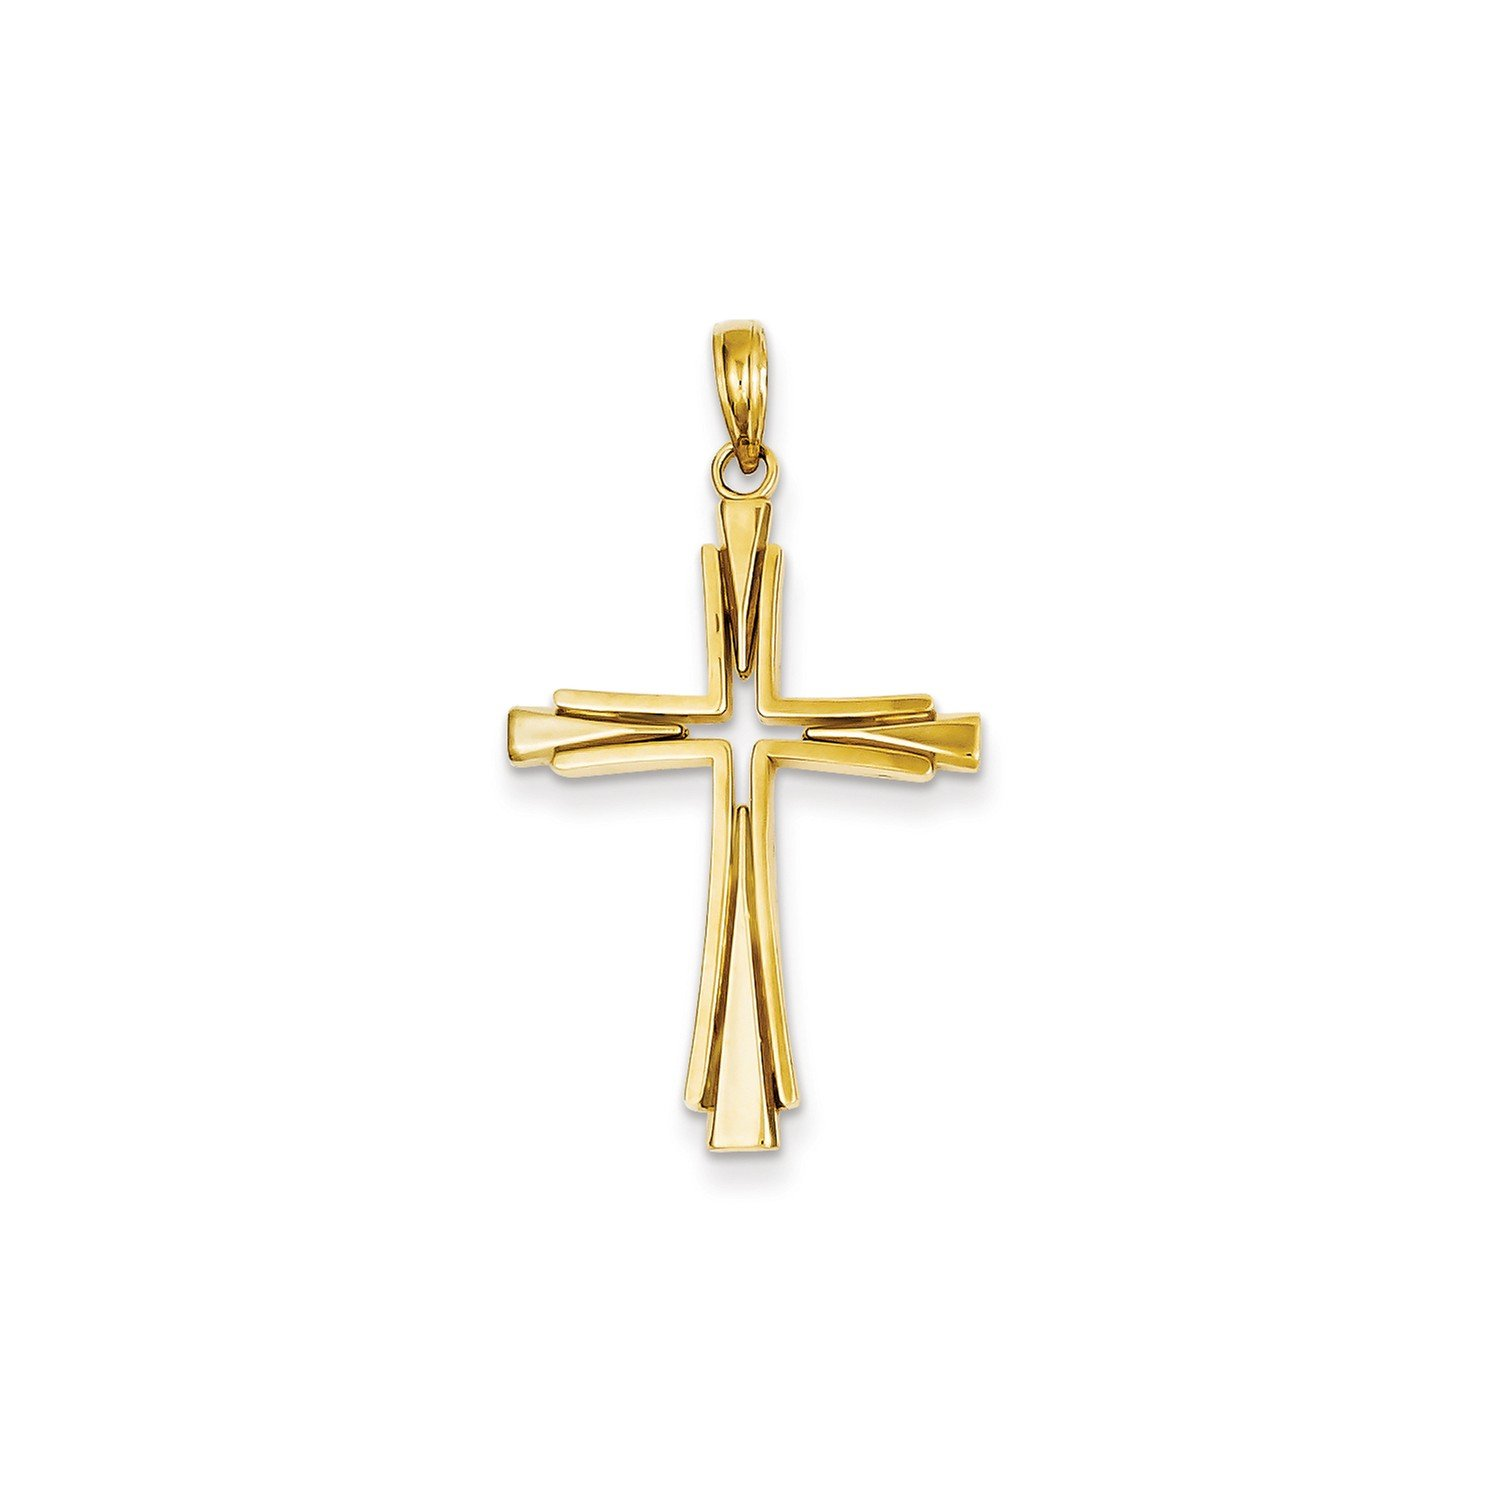 Roy Rose Jewelry 14K Yellow Gold Polished Solid Cross Pendant